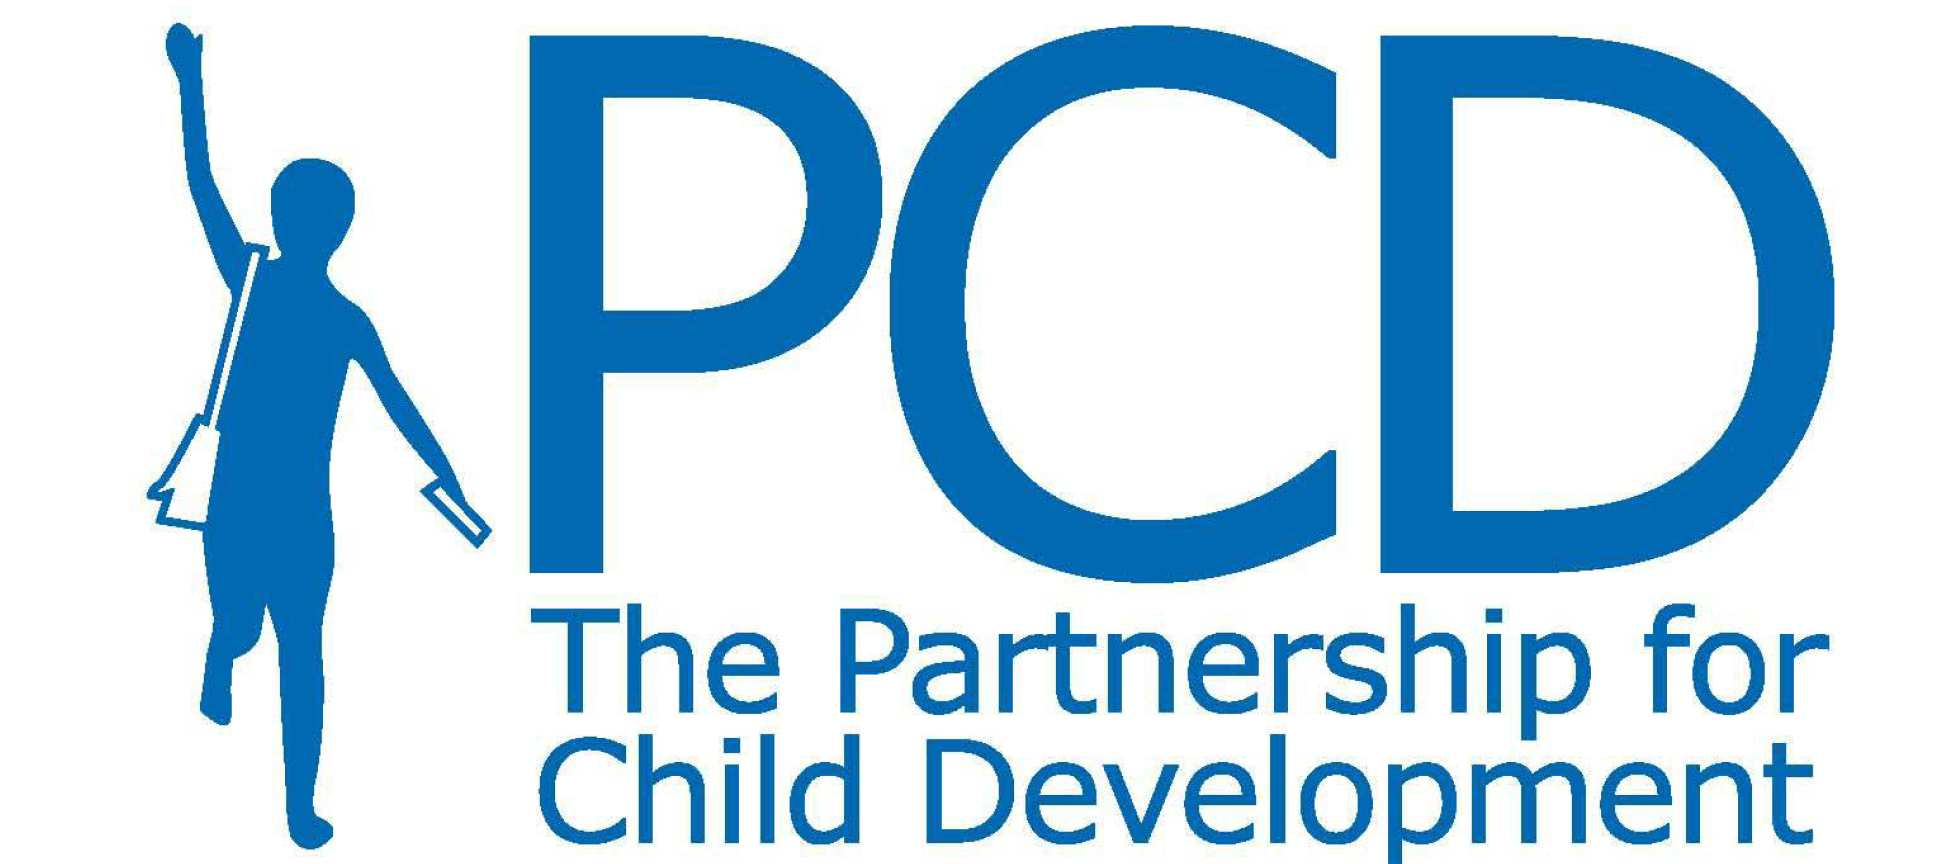 Partnership for Child Development logo